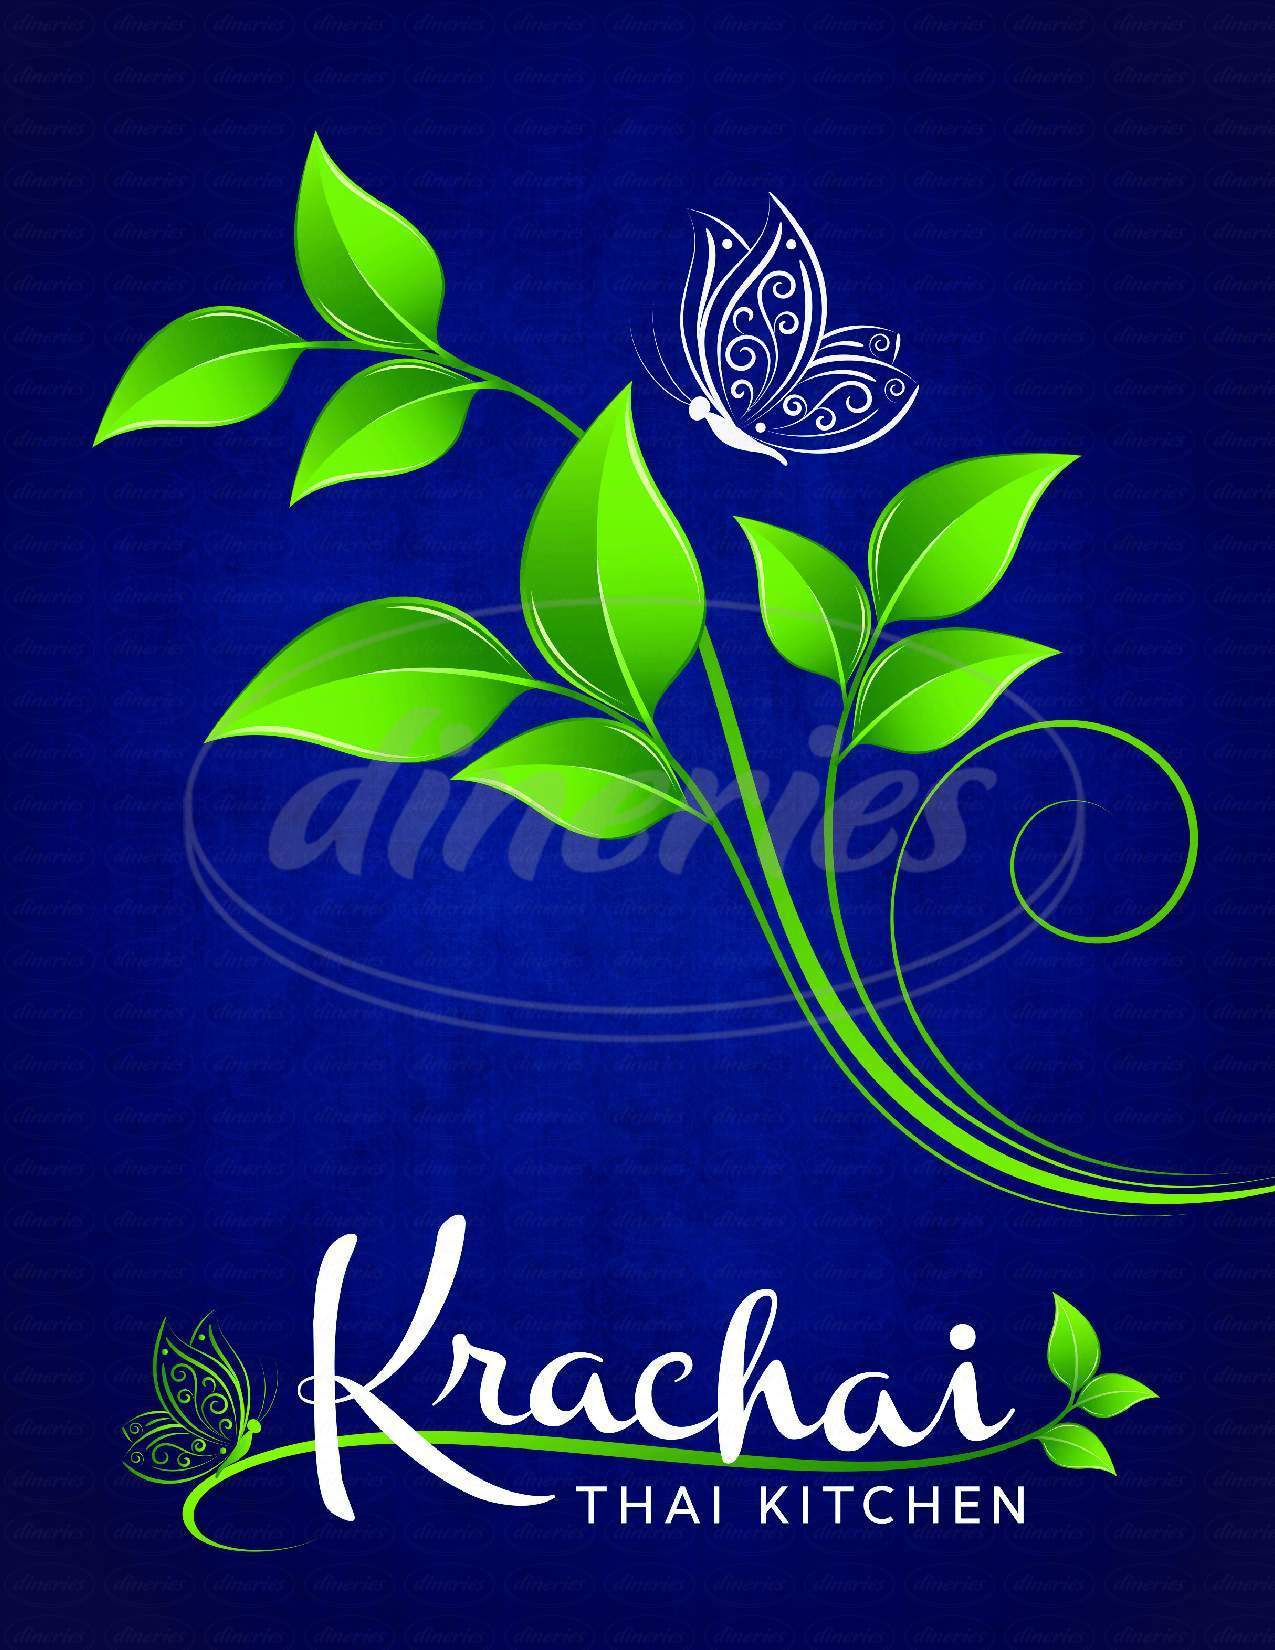 menu for Krachai Thai Kitchen